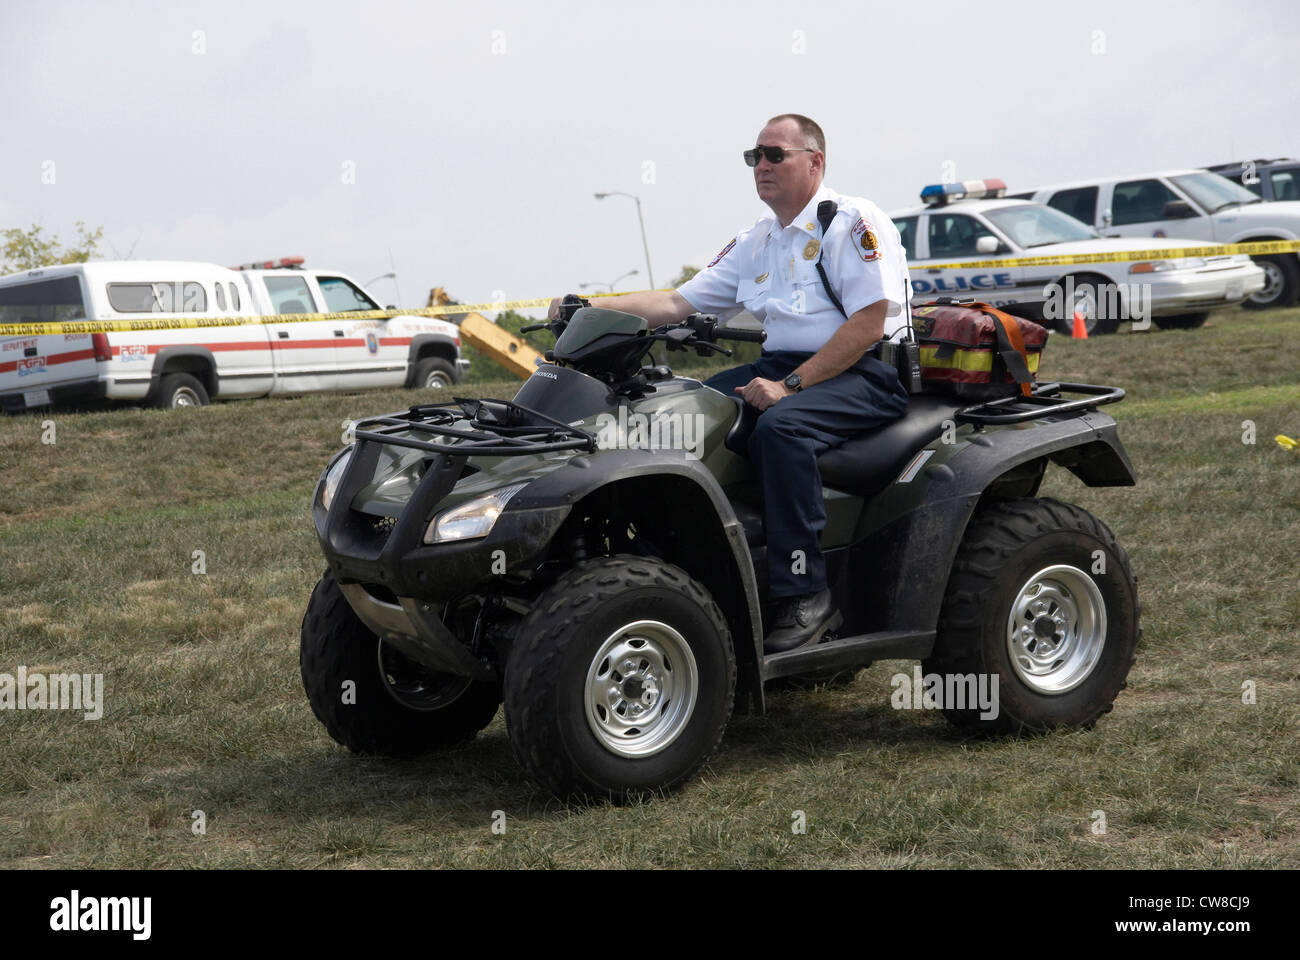 A Medic on a 4 wheel dirt bike patrols for medical emergencies at a festival in Bladensburg, Maryland - Stock Image